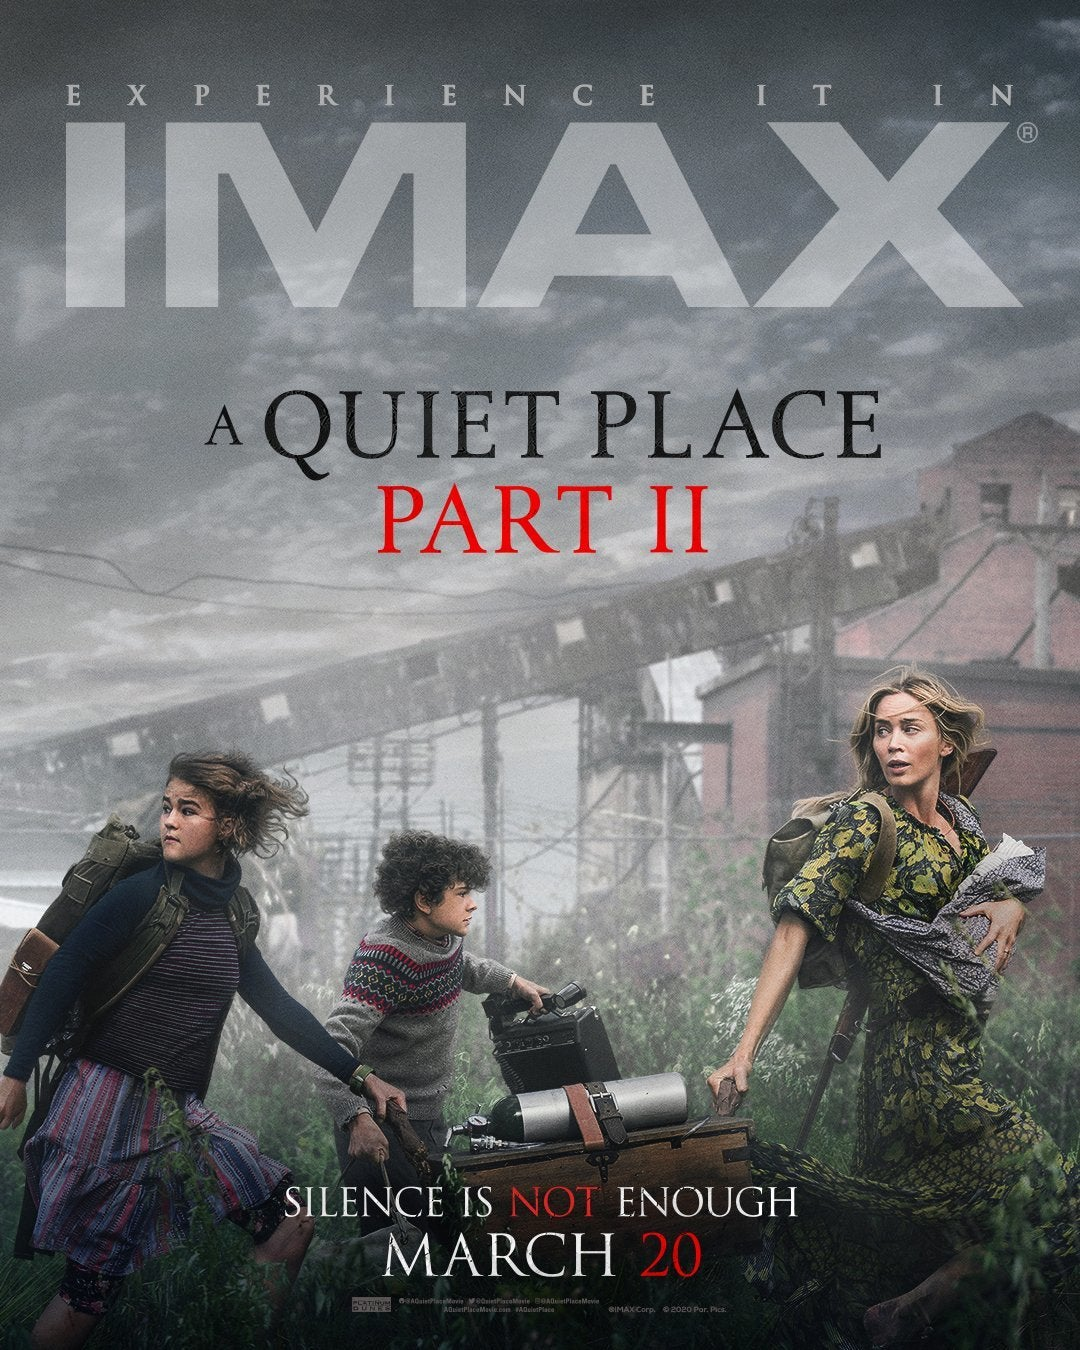 a quiet place part ii imax poster emily blunt